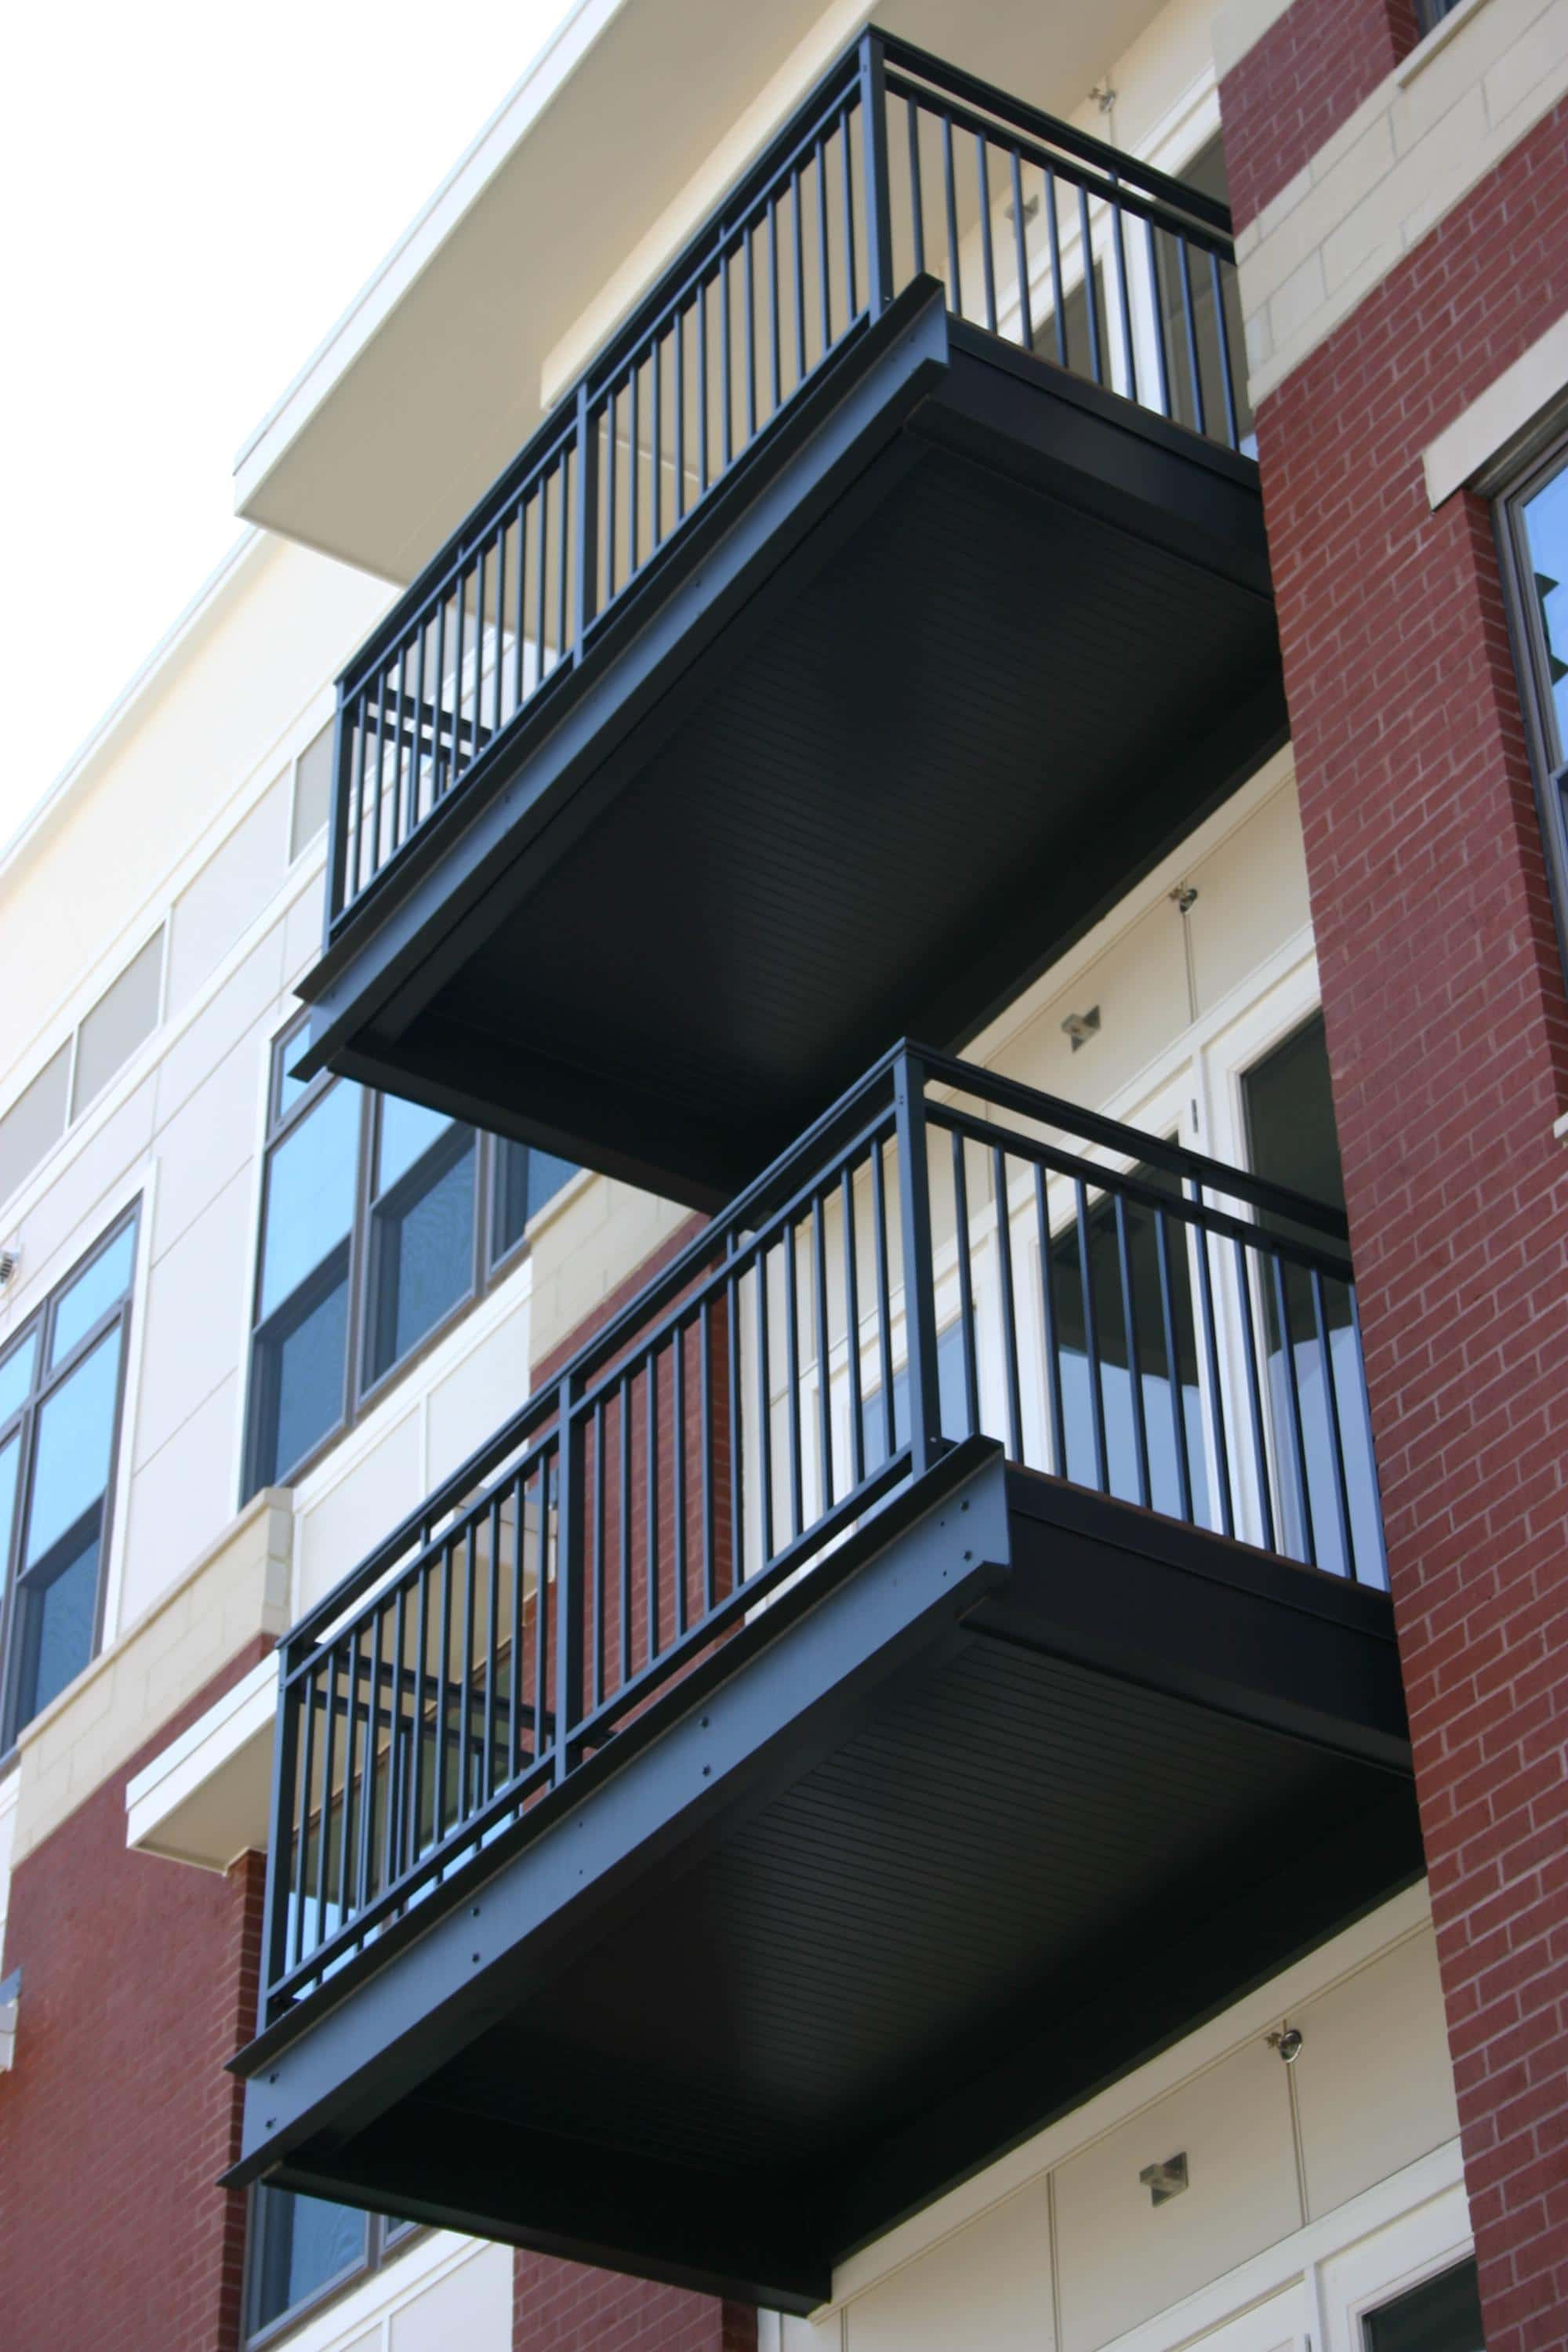 Wahoo Decks: Solutions to Multifamily Decking and Balcony Applications